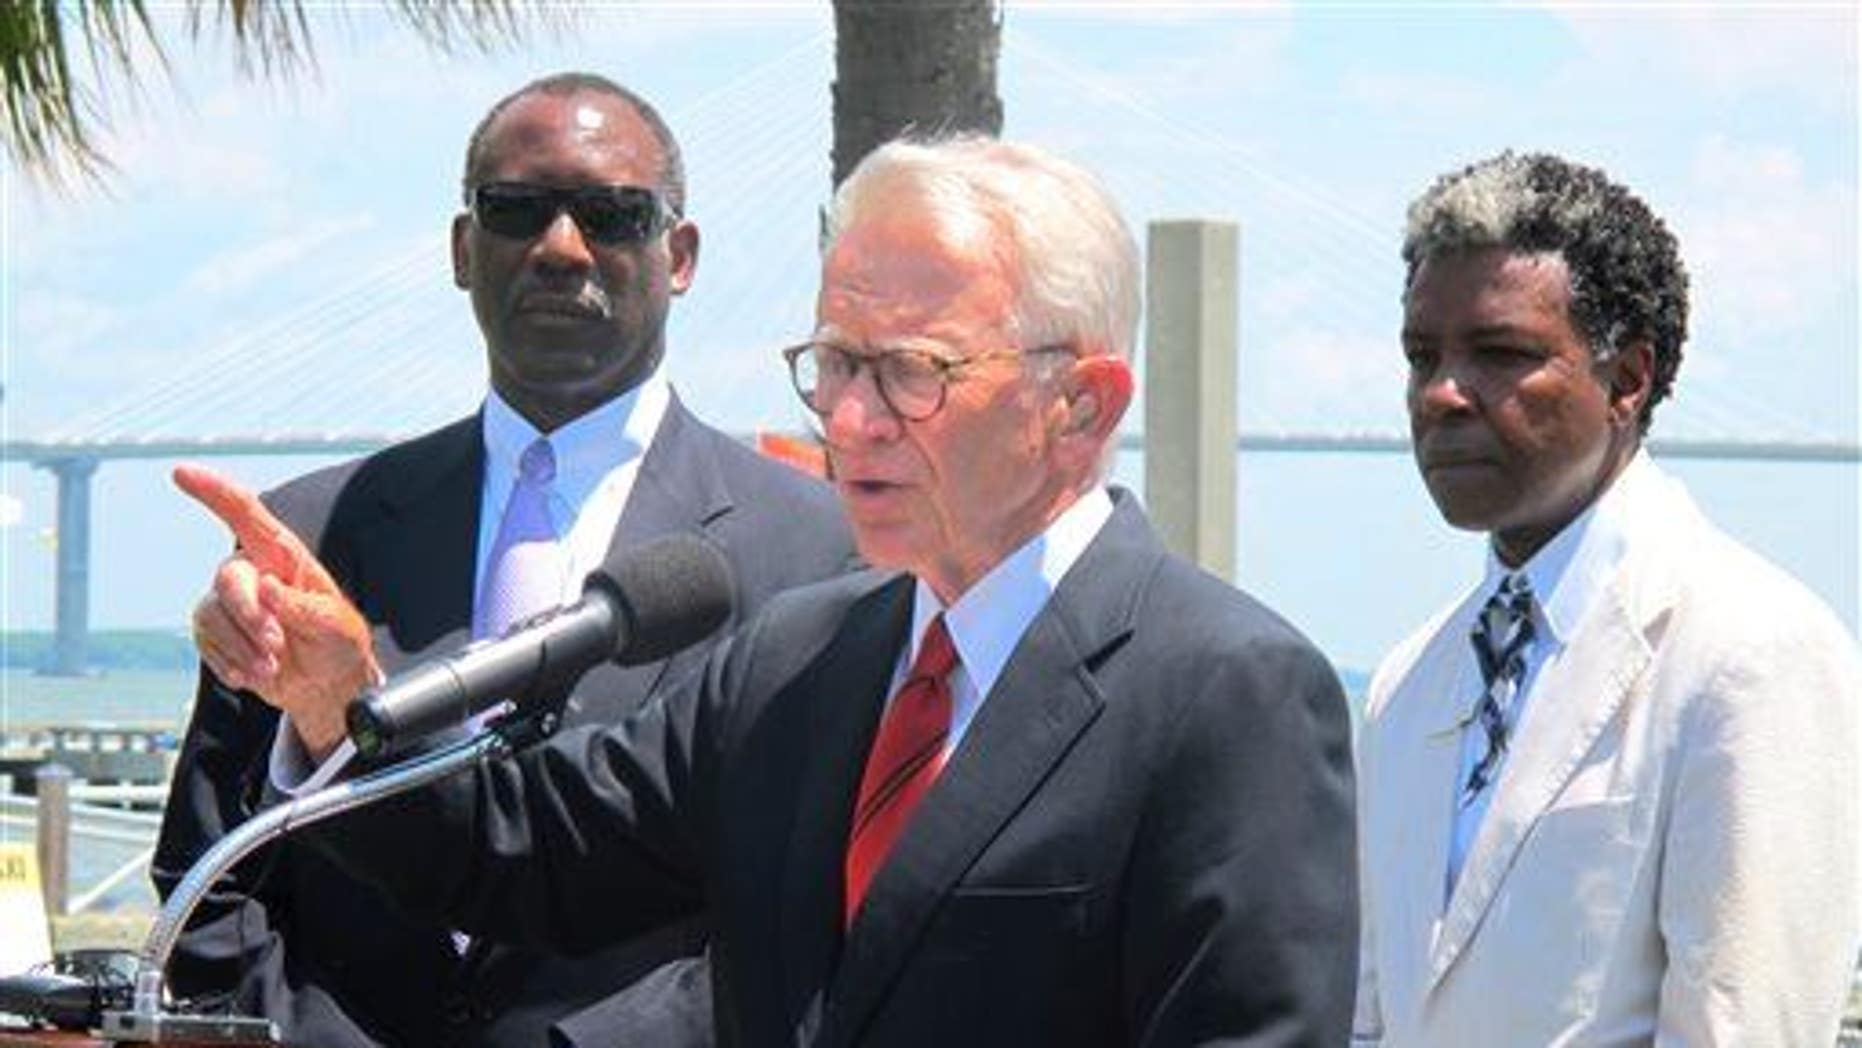 Mayor Joseph P. Riley Jr., center, announces the African American Museum to be built at the site of a wharf in Charleston, during a July 15, 2014 news conference in the city.